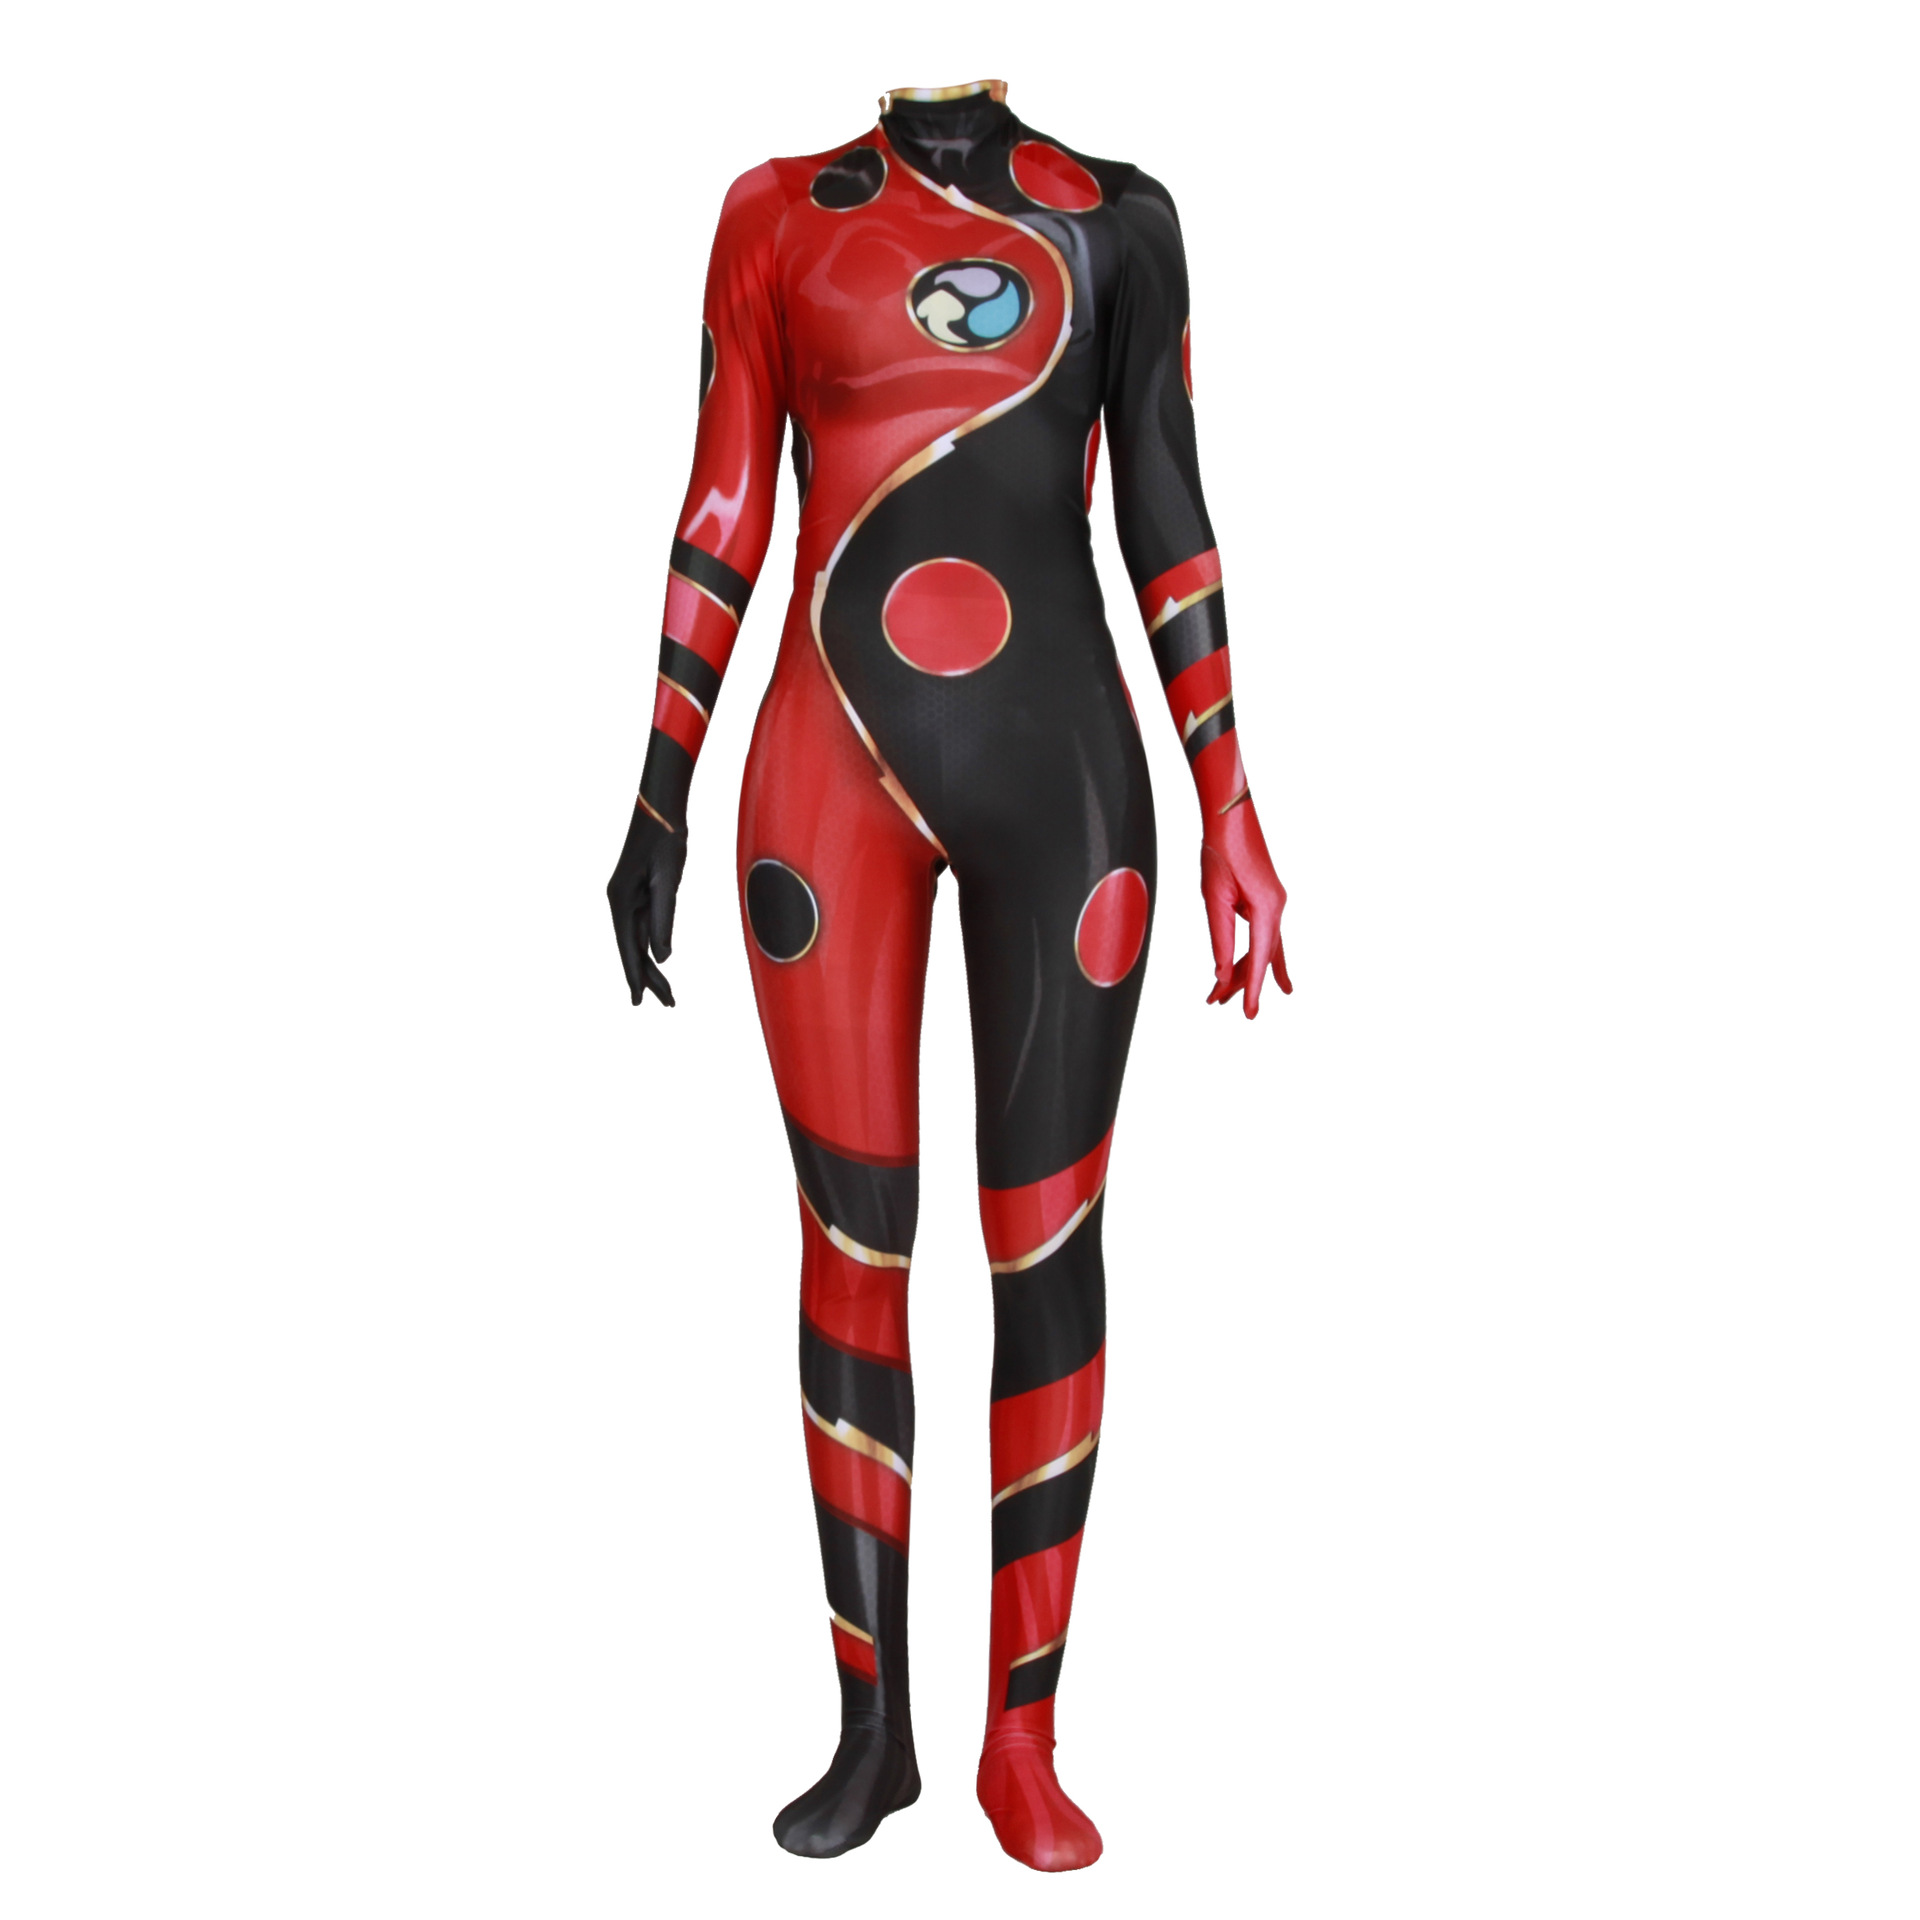 Ladybug Girl Costume /& Woman Cosplay Marinette Cartoon tight fitting clothes